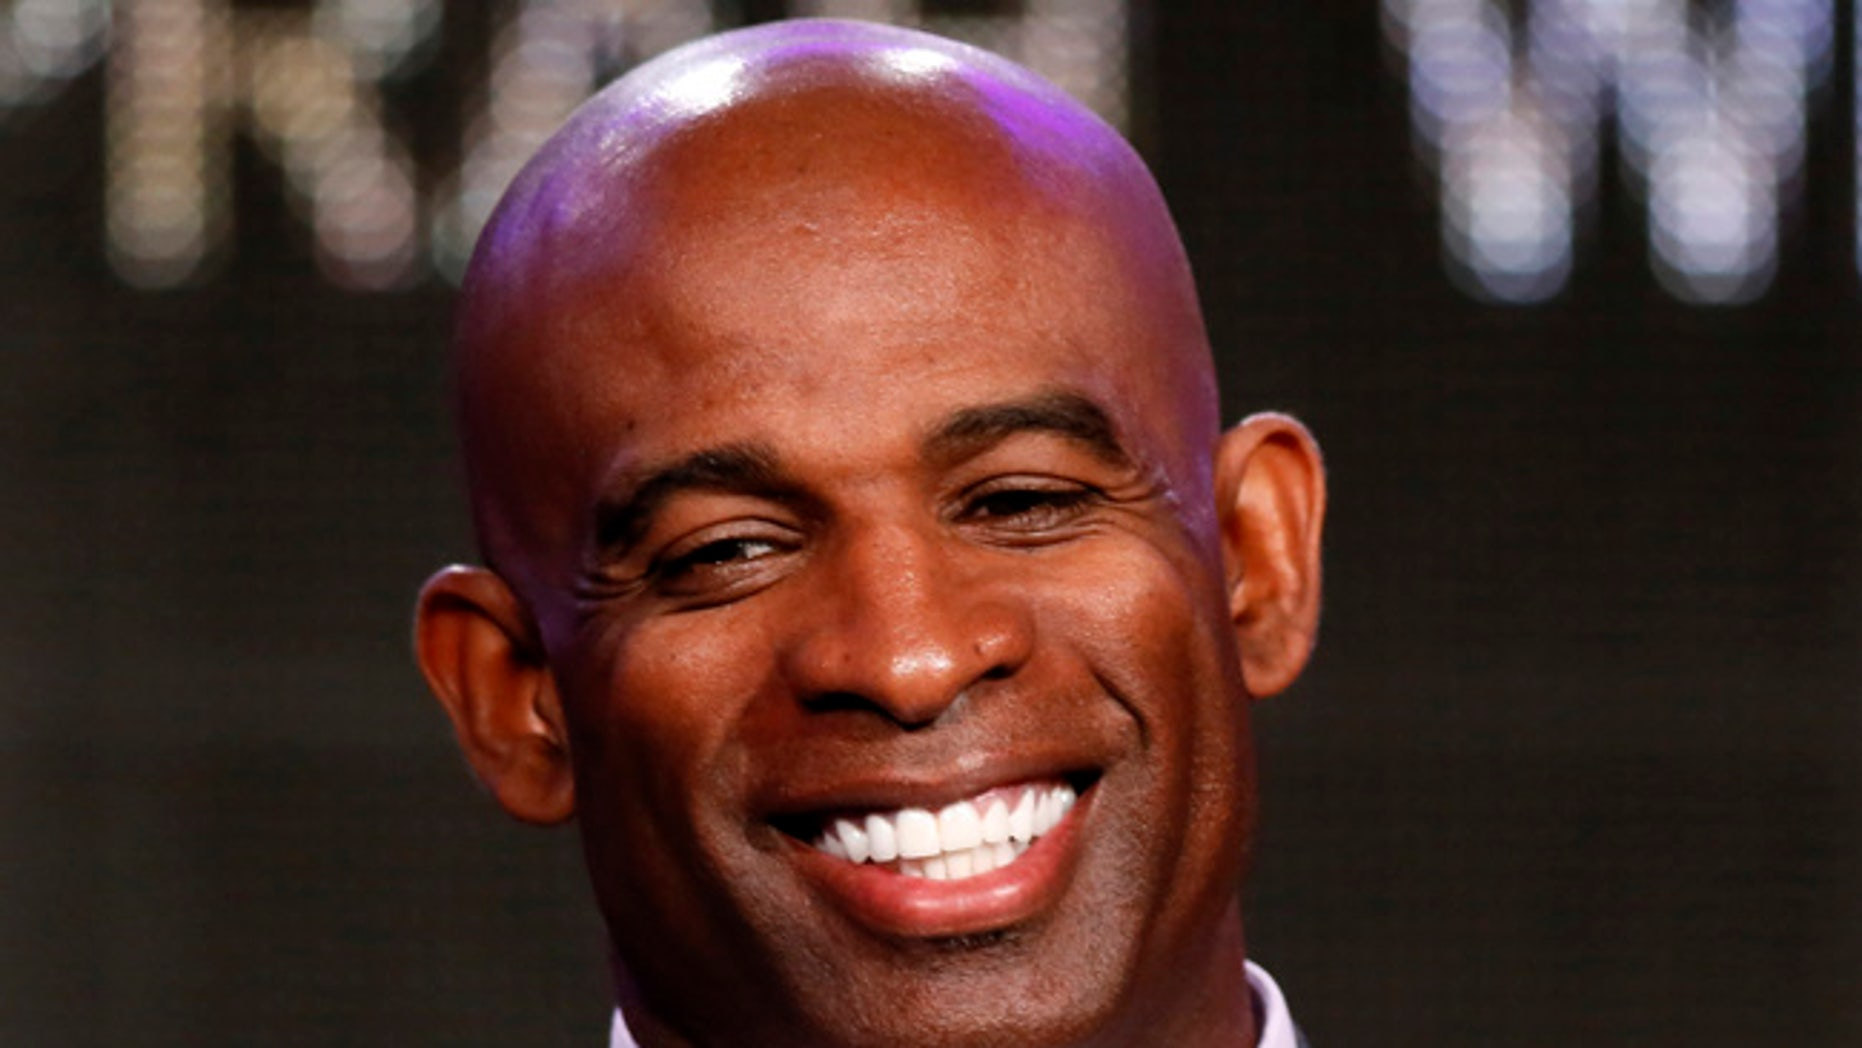 """Deion Sanders talks about OWN: Oprah Winfrey Network's """"Deion's Family Playbook"""" during the Winter 2014 TCA presentations in Pasadena, California, January 9, 2014. REUTERS/Lucy Nicholson (UNITED STATES - Tags: ENTERTAINMENT PROFILE HEADSHOT SPORT FOOTBALL) - RTX177SQ"""